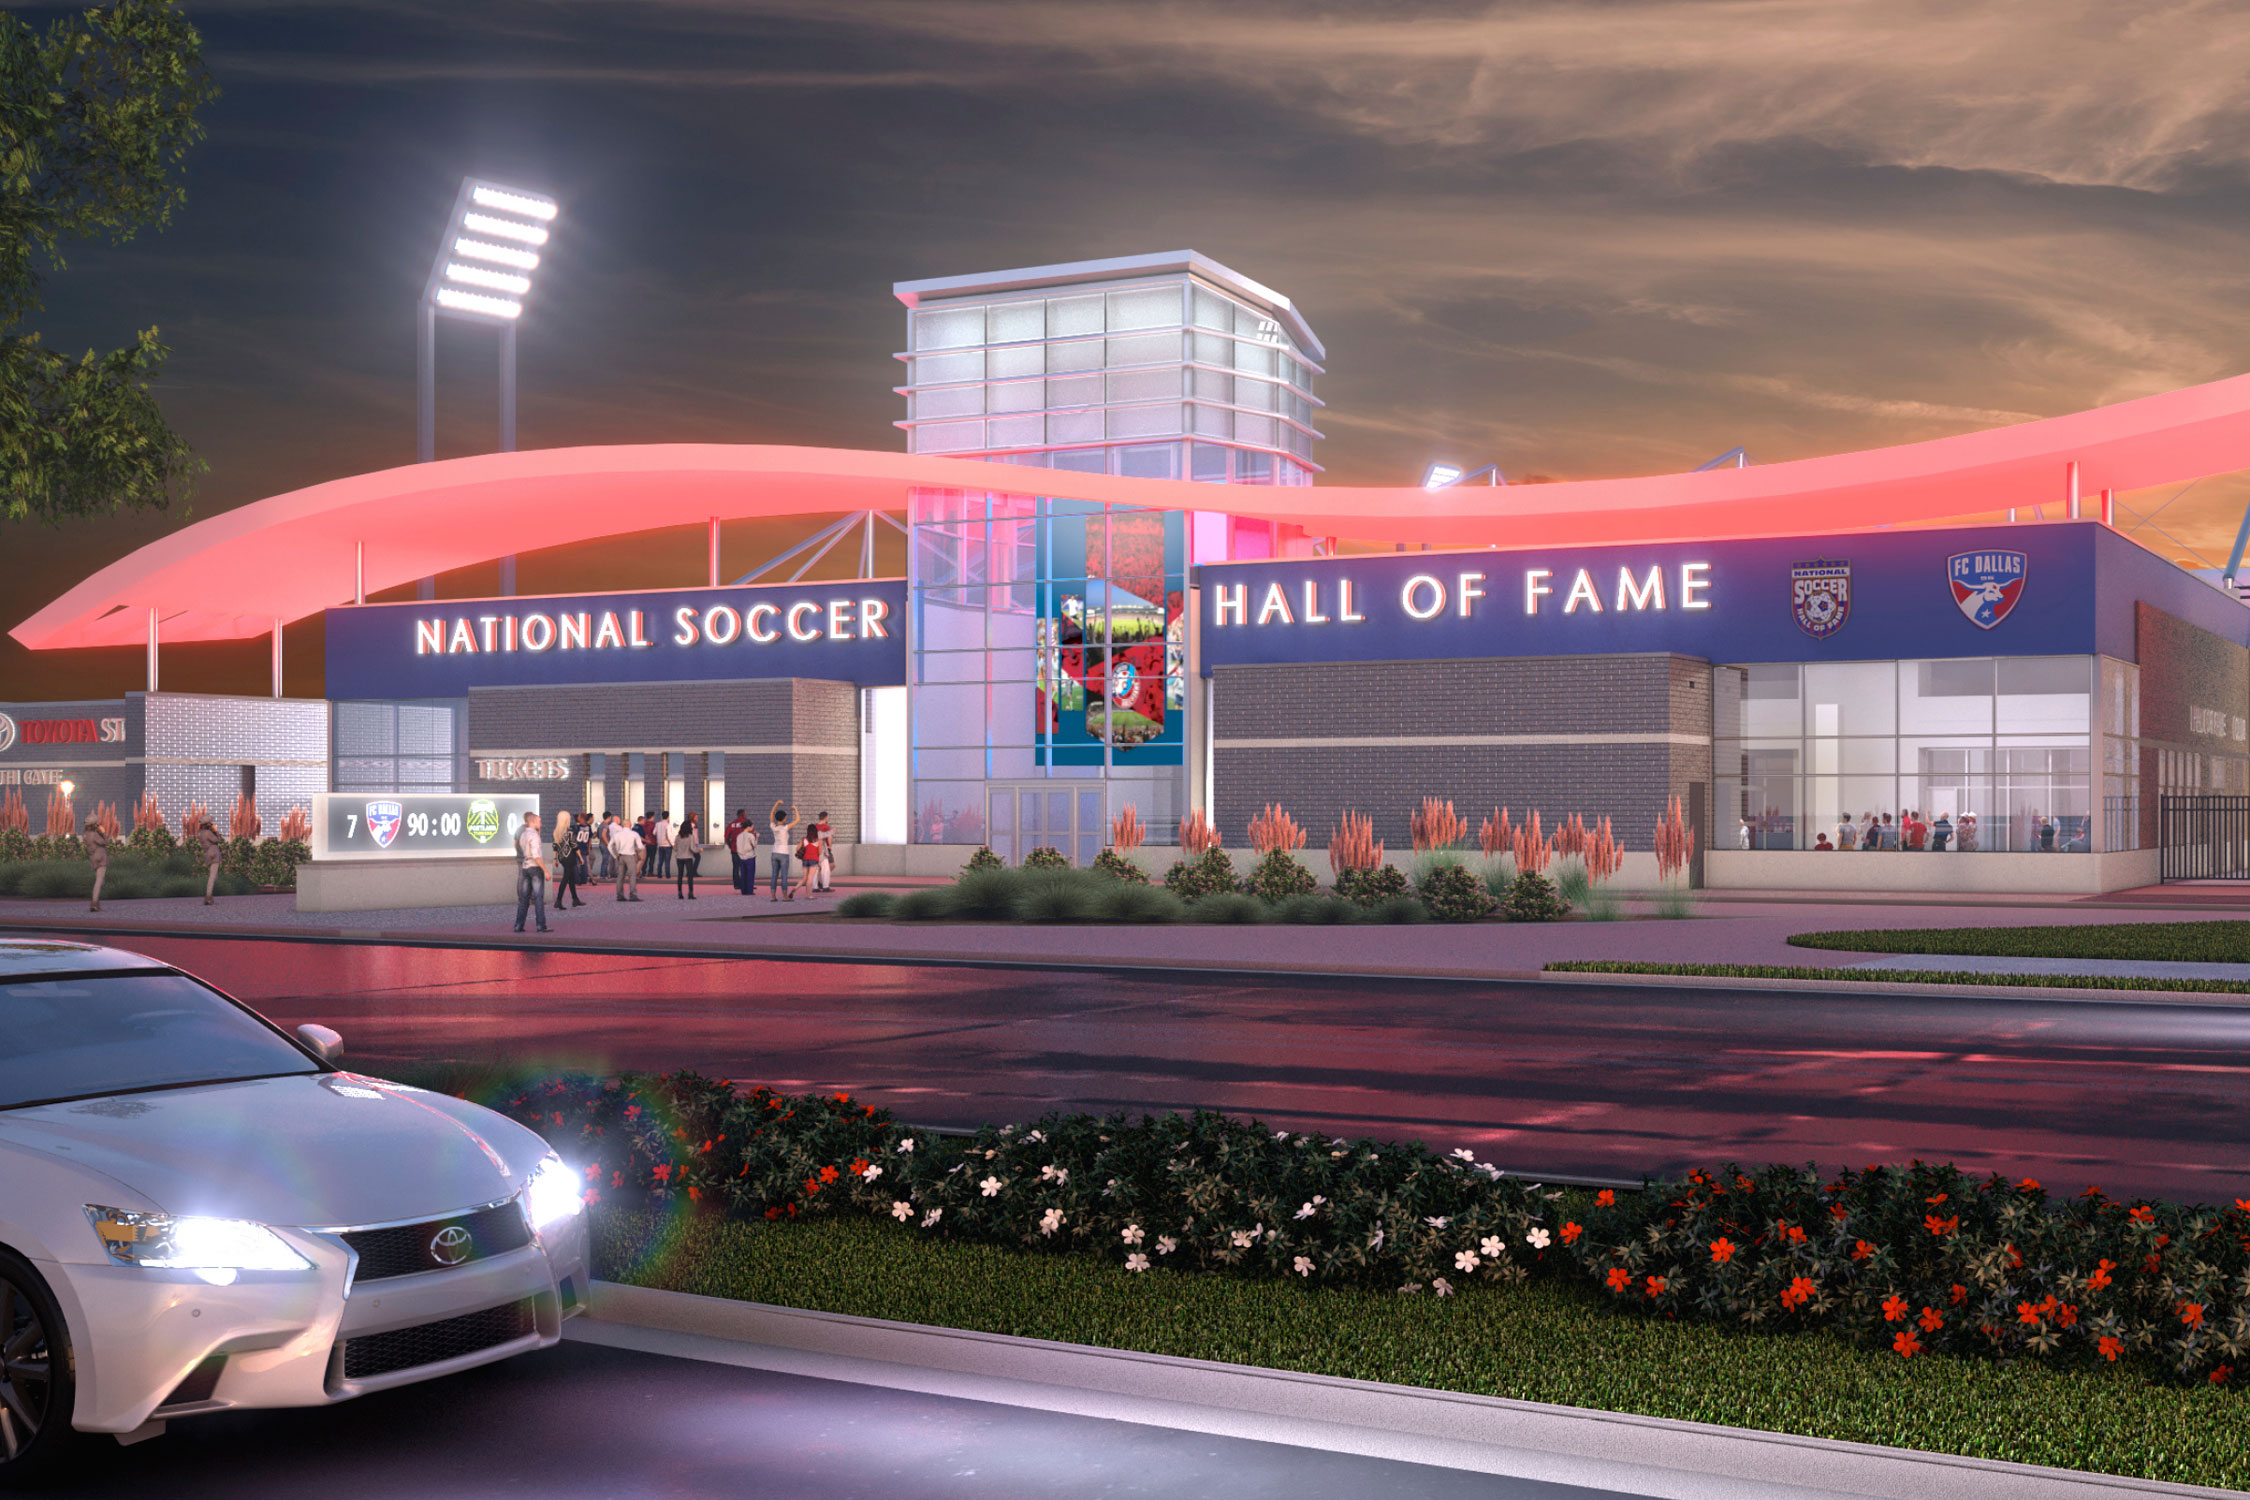 FC Dallas's Toyota Stadium will be the new site for the U.S. National Soccer Hall of Fame.